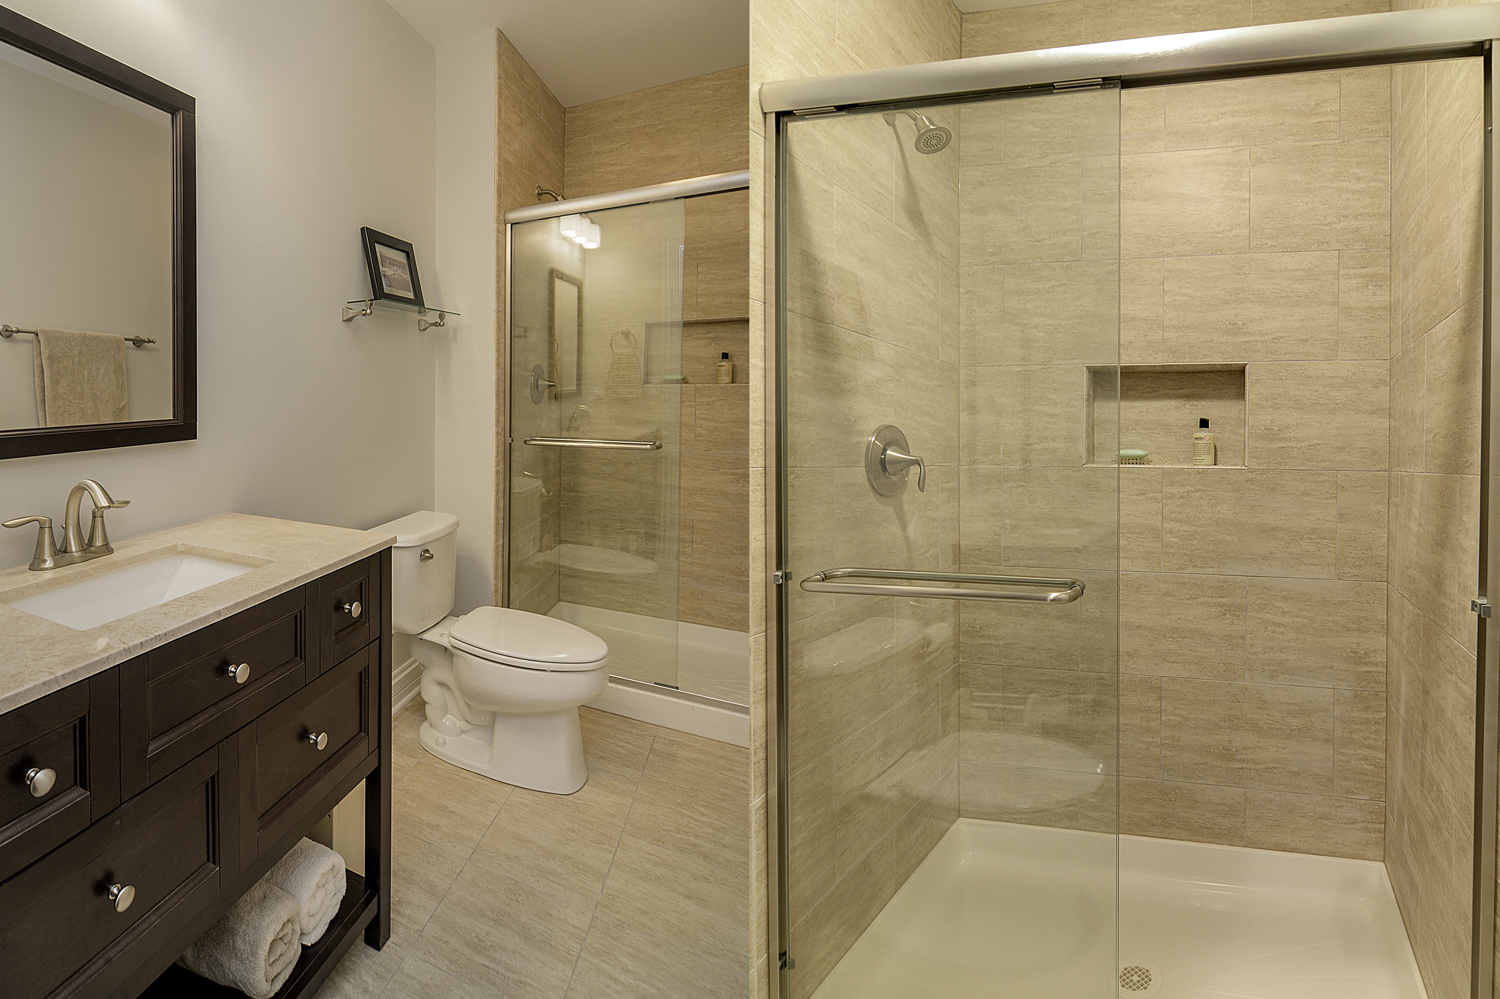 Bath Remodeling Contractors Decoration bathroom contractors.bathroom contractors before remodeling